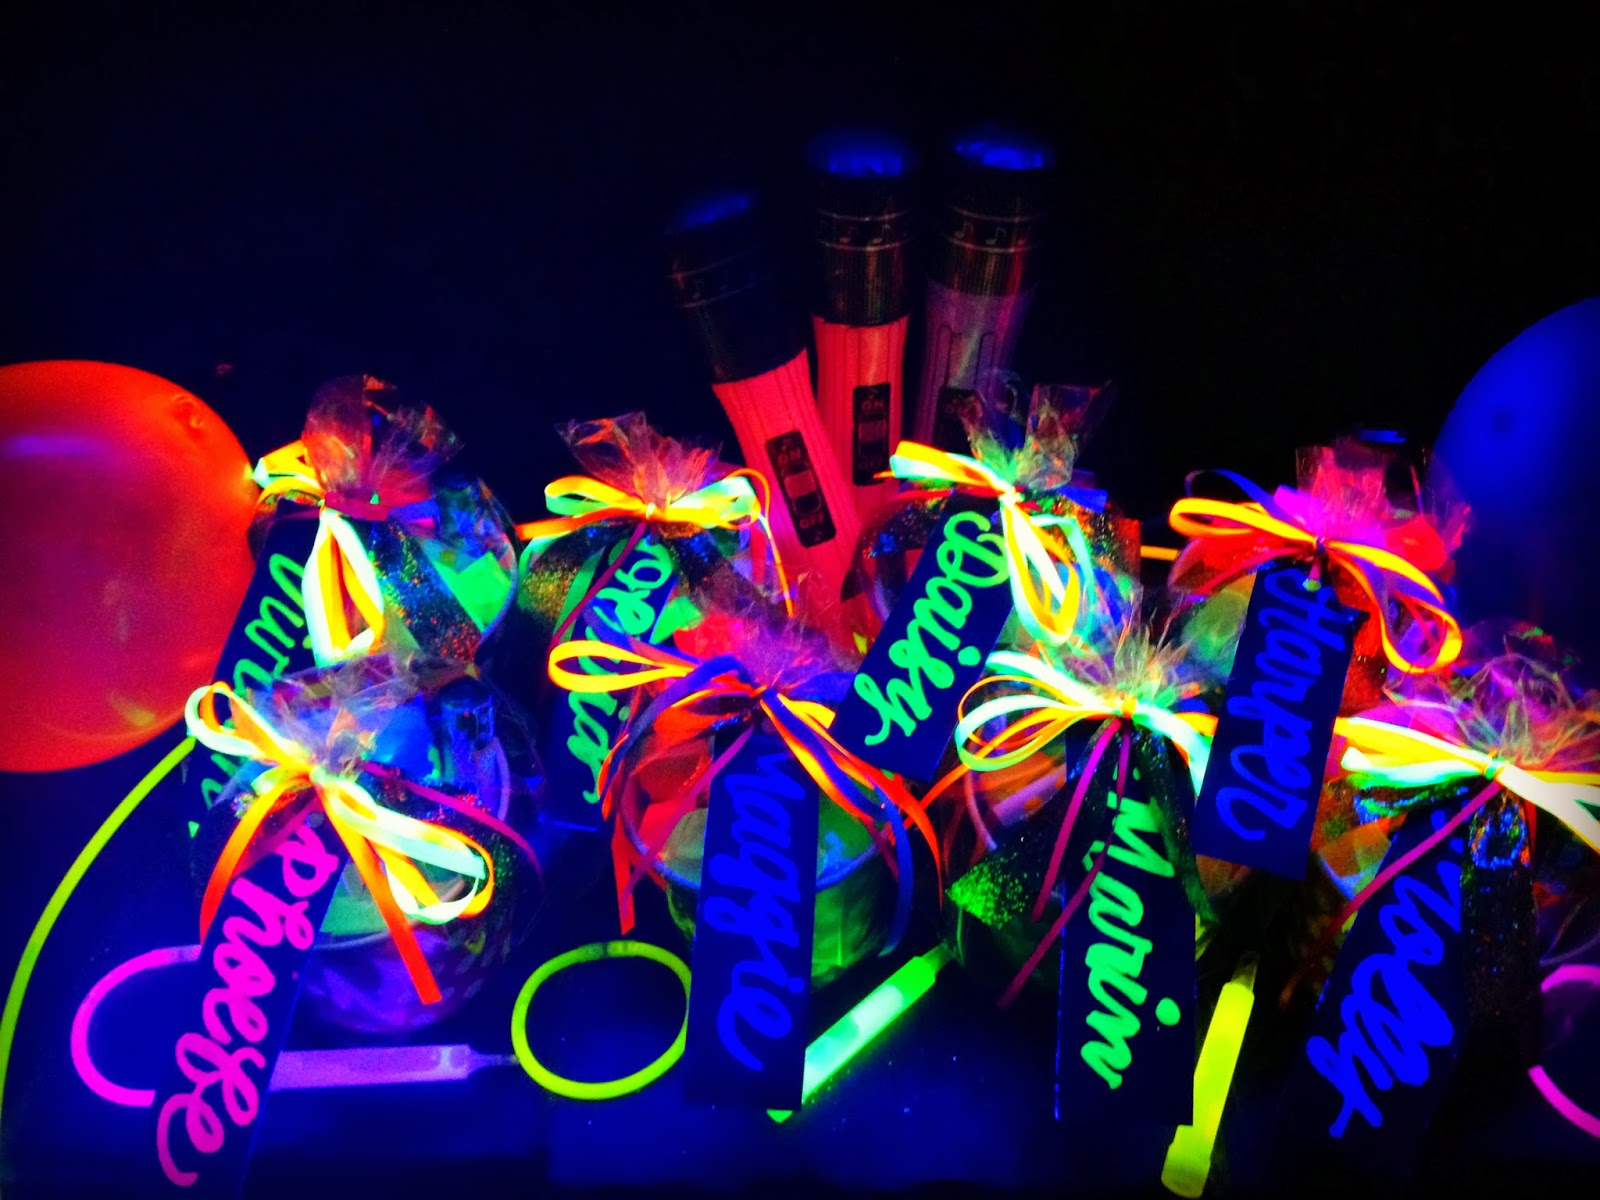 Bringing Up Burns: Molly's NINTH Neon/Glow in the Dark ...